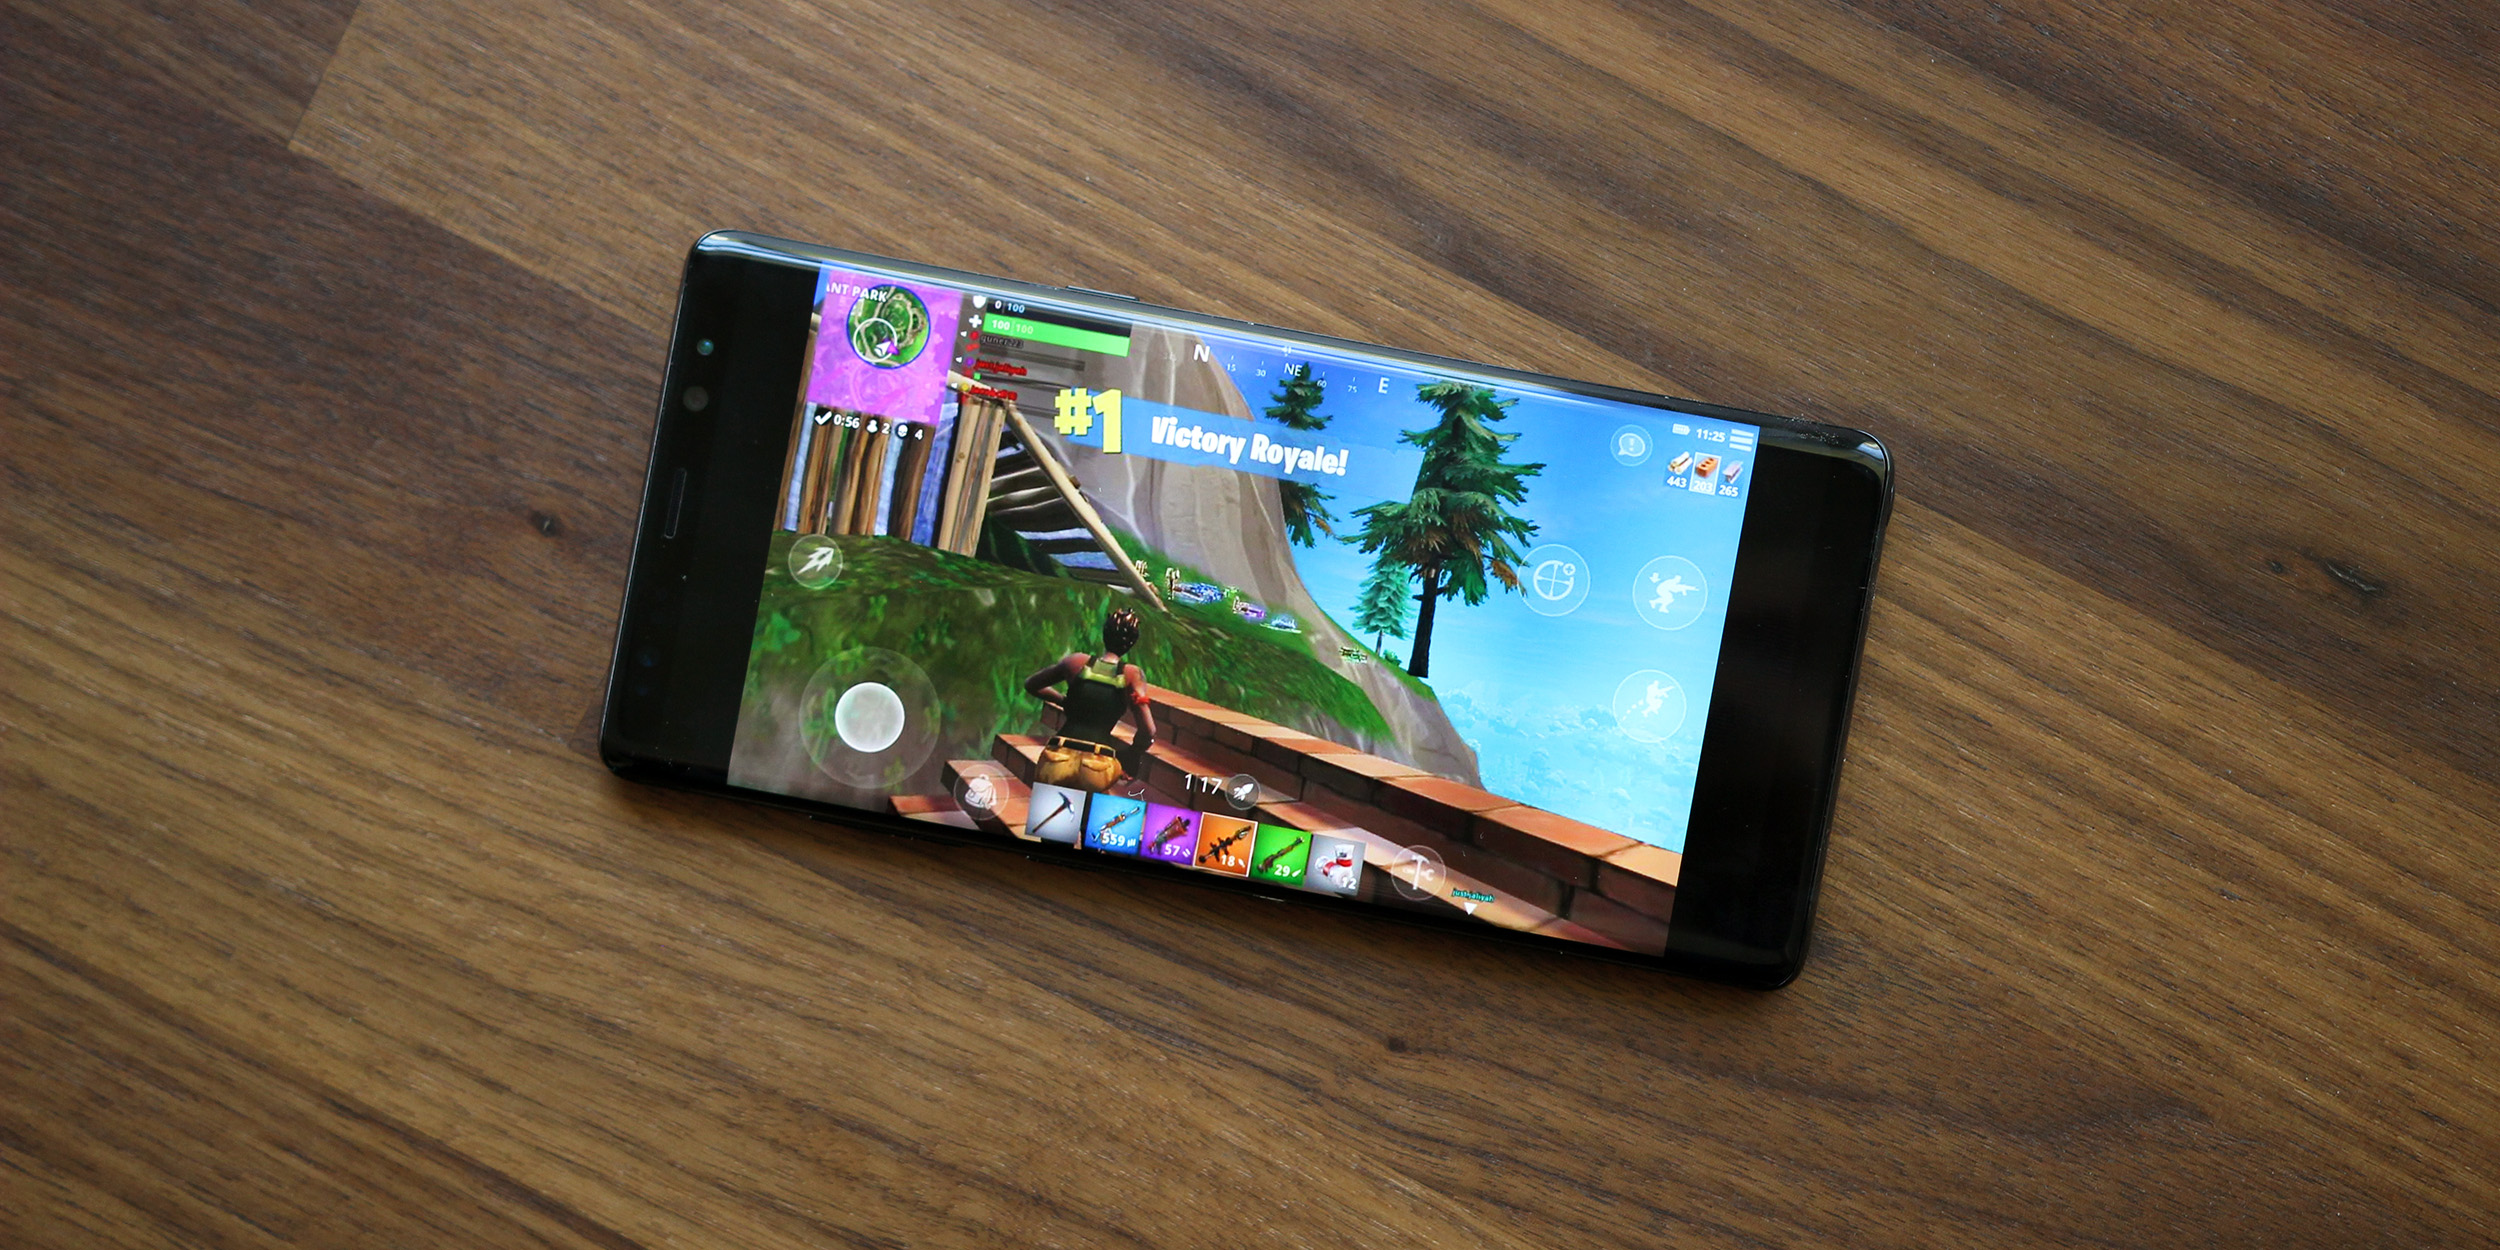 Source Fortnite For Android Will Be Exclusive To Galaxy Note 9 For